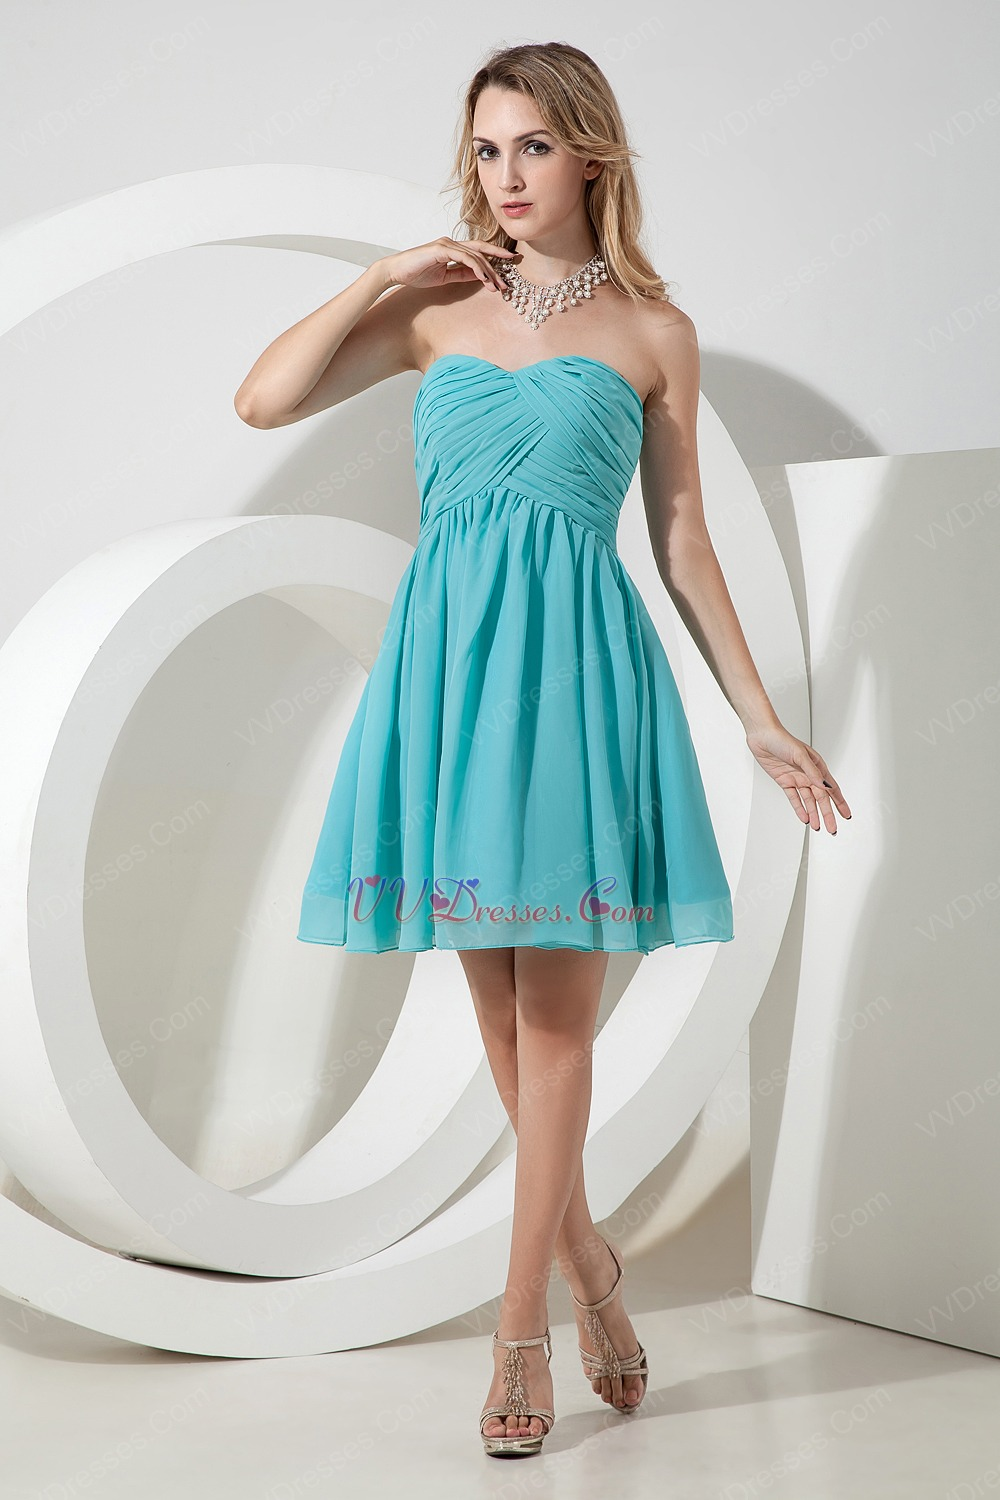 Simple Sweet heart Spring Turquoise Bridesmaid Dress